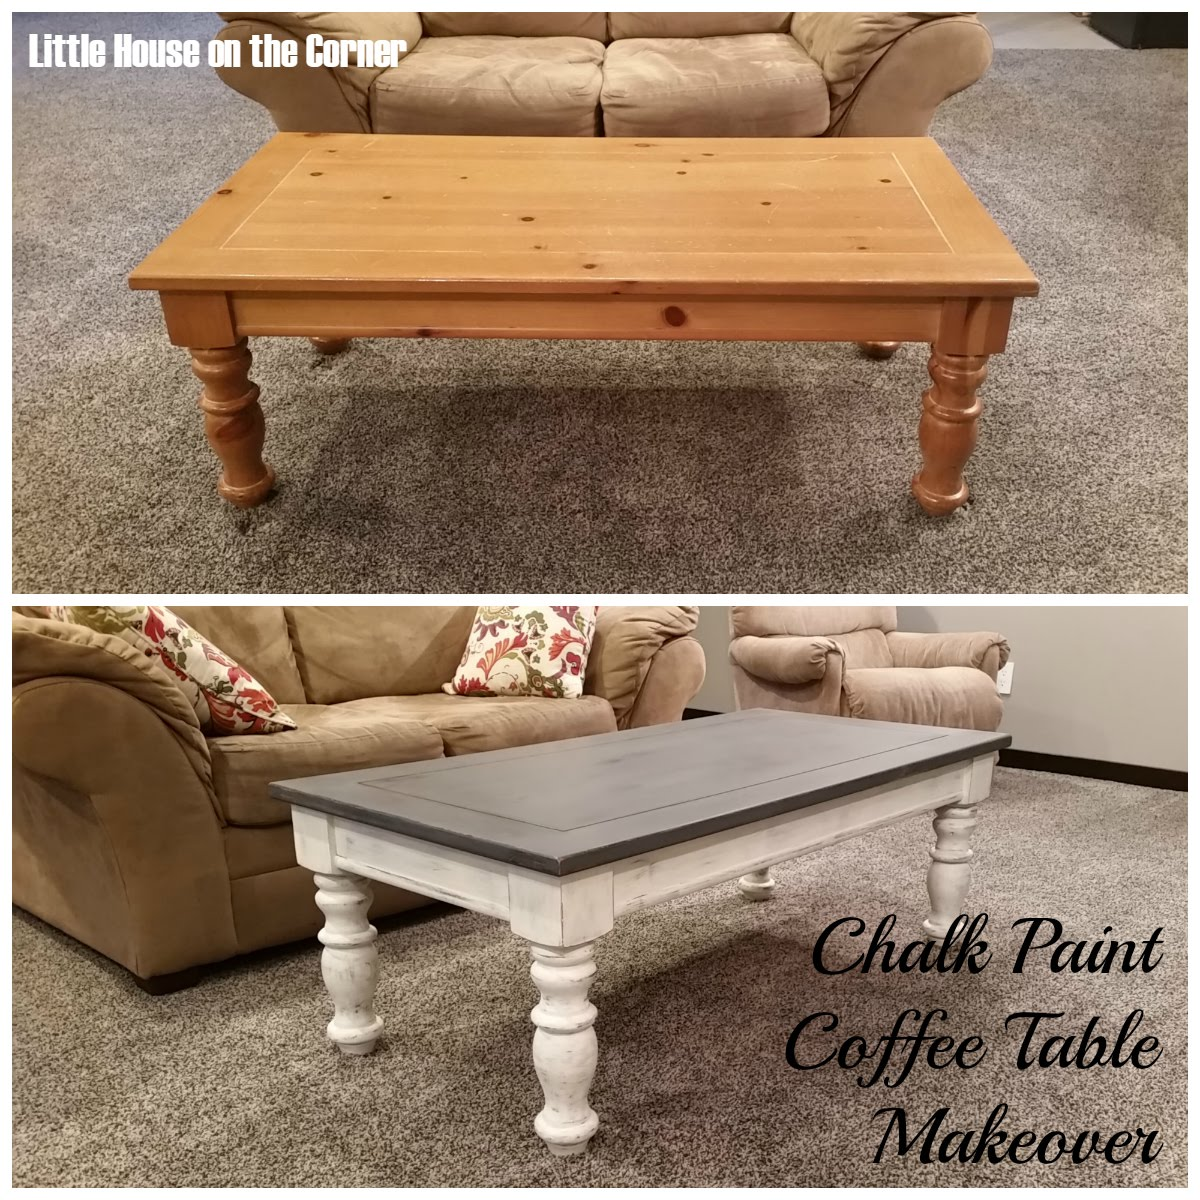 Little house on the corner chalk paint coffee table makeover Painted coffee table